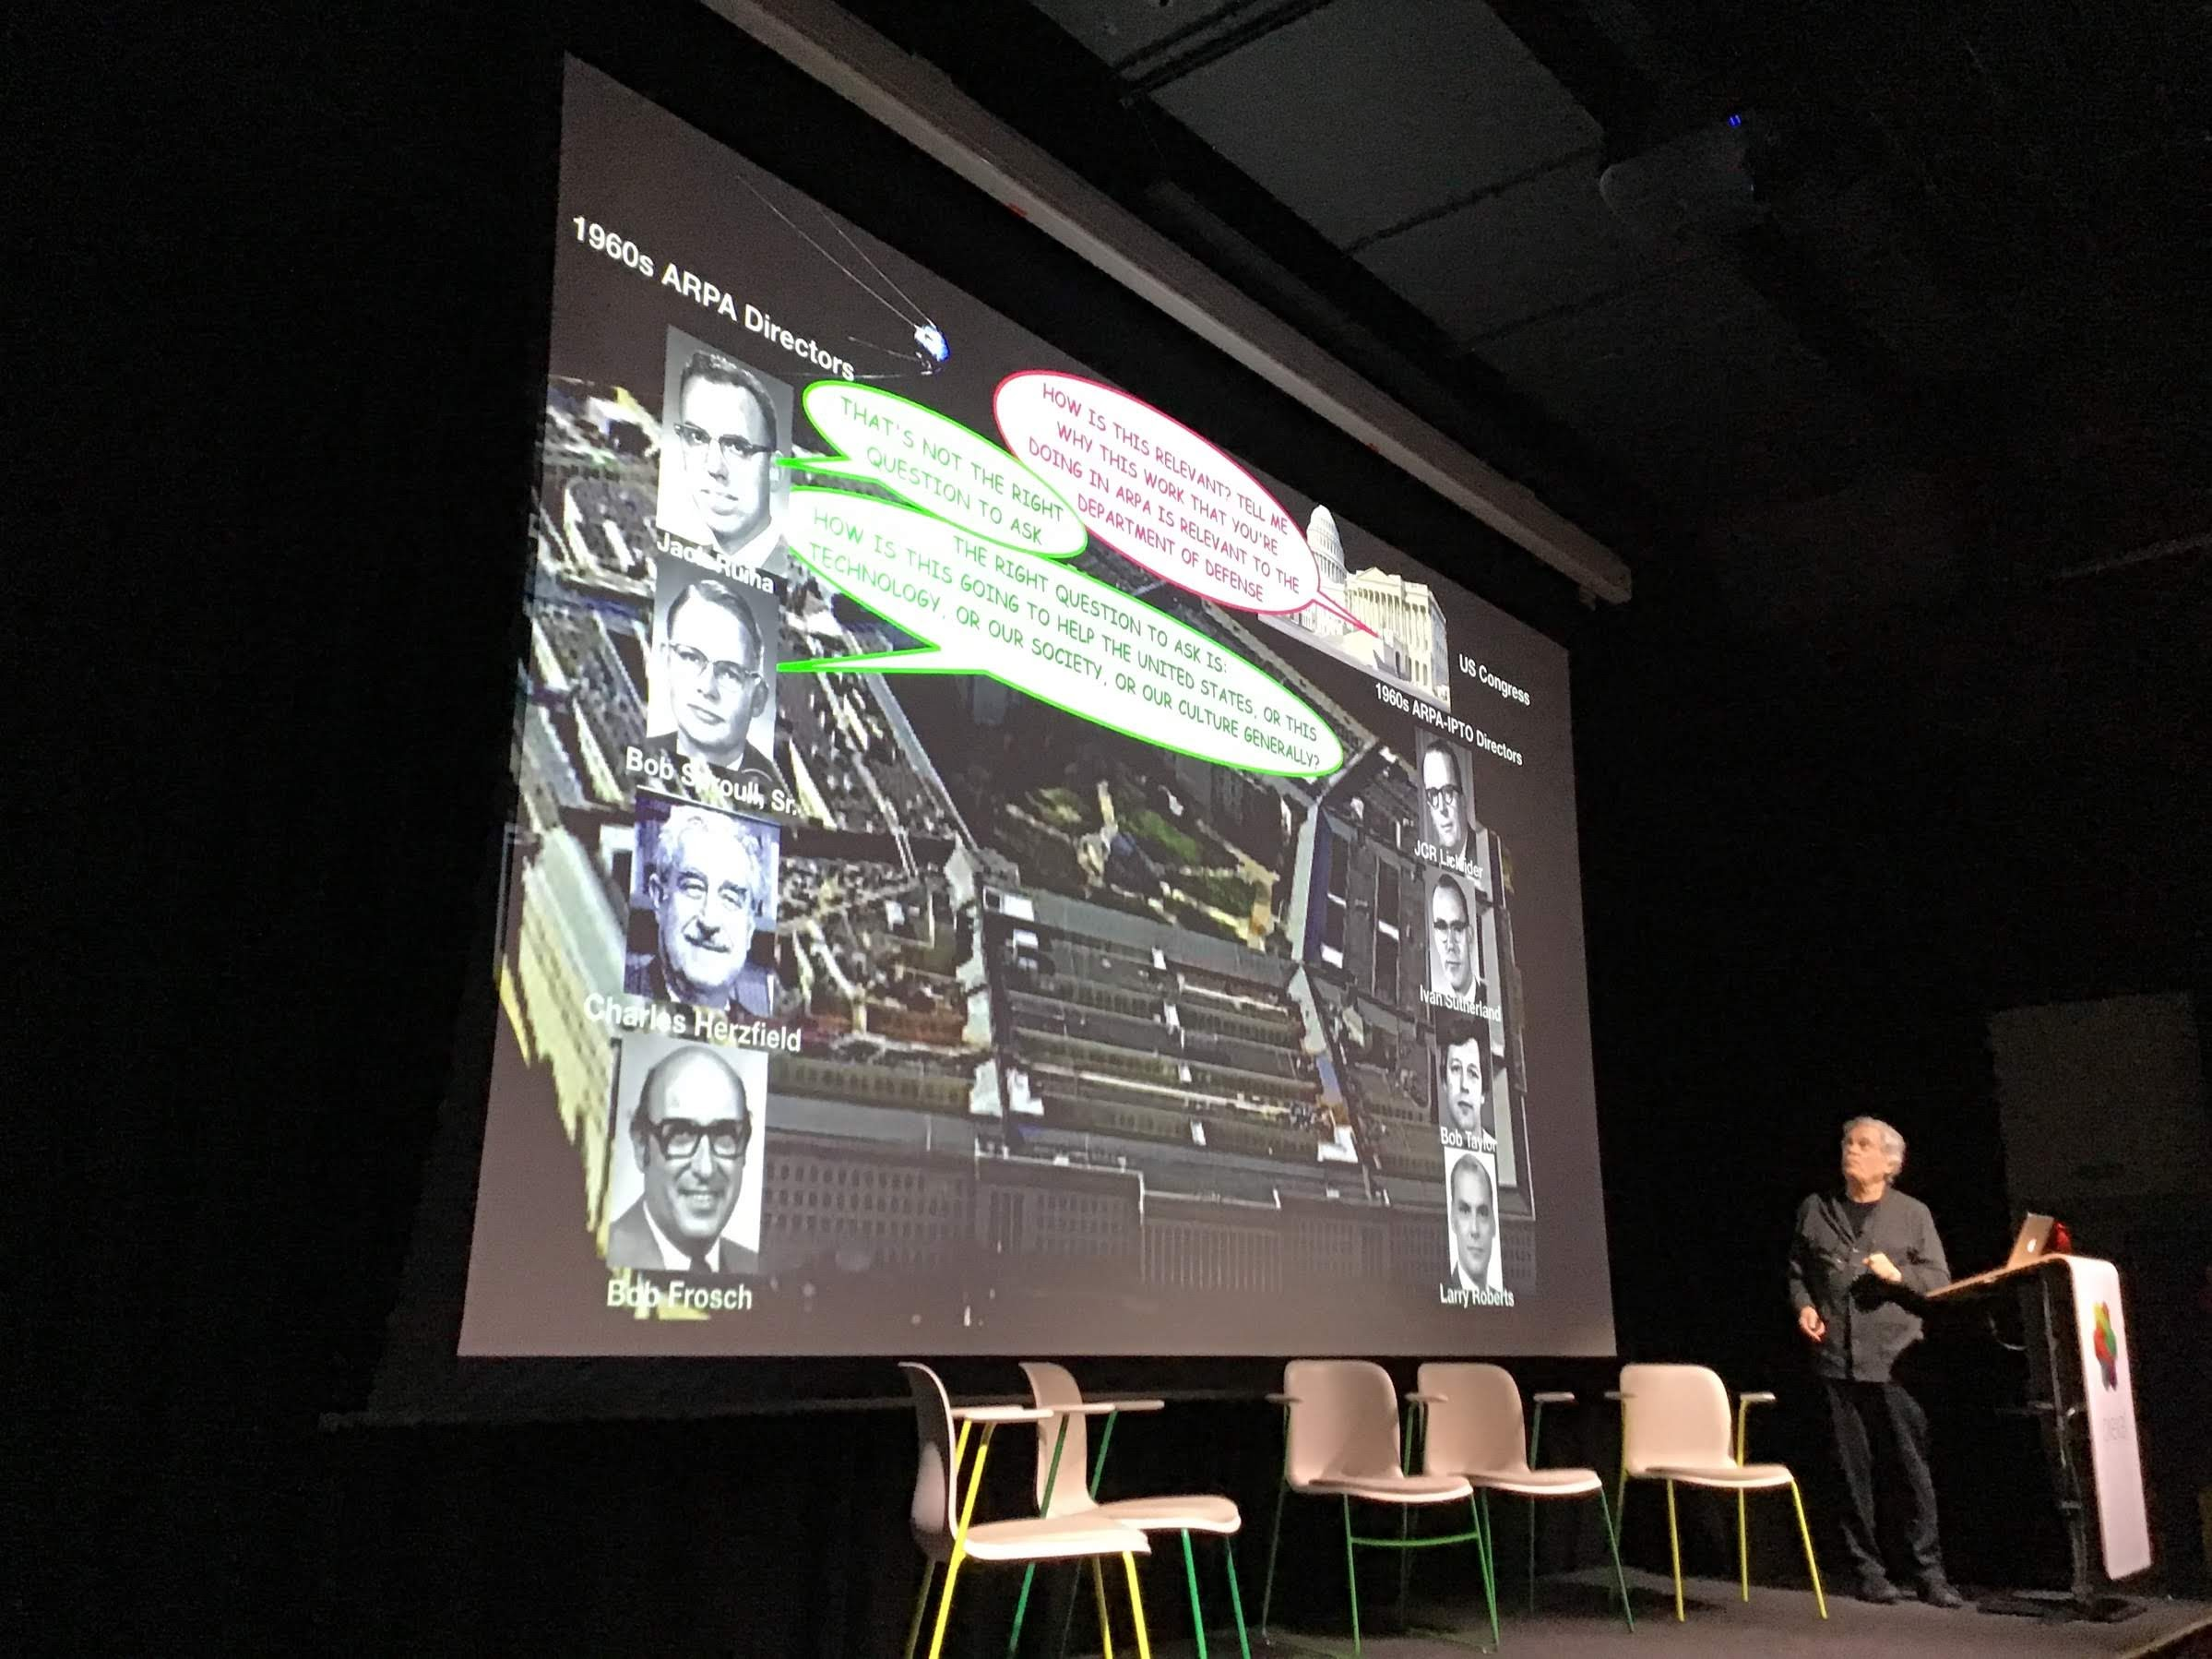 Alan Kay at 50 Years of the Internet event at Plexal, London